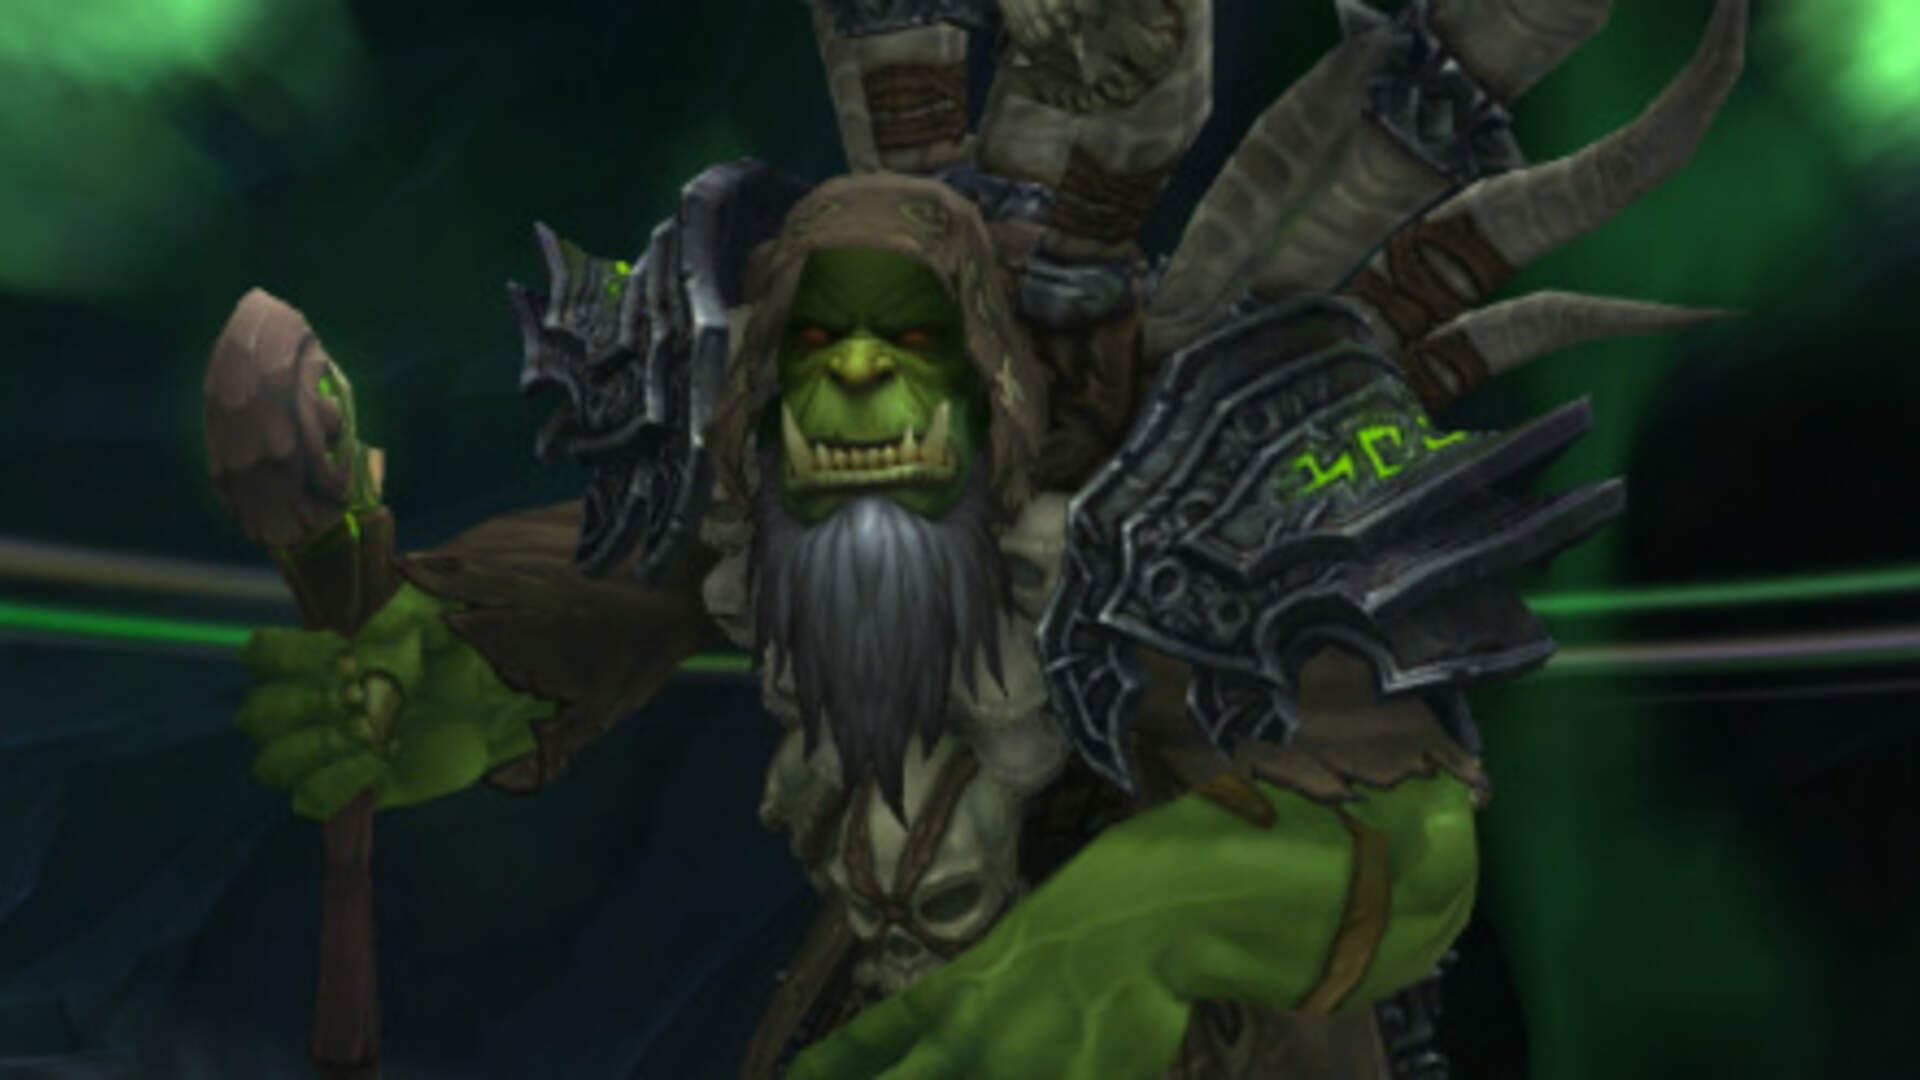 Hacker Given Jail Sentence for World of Warcraft DDoS Attack